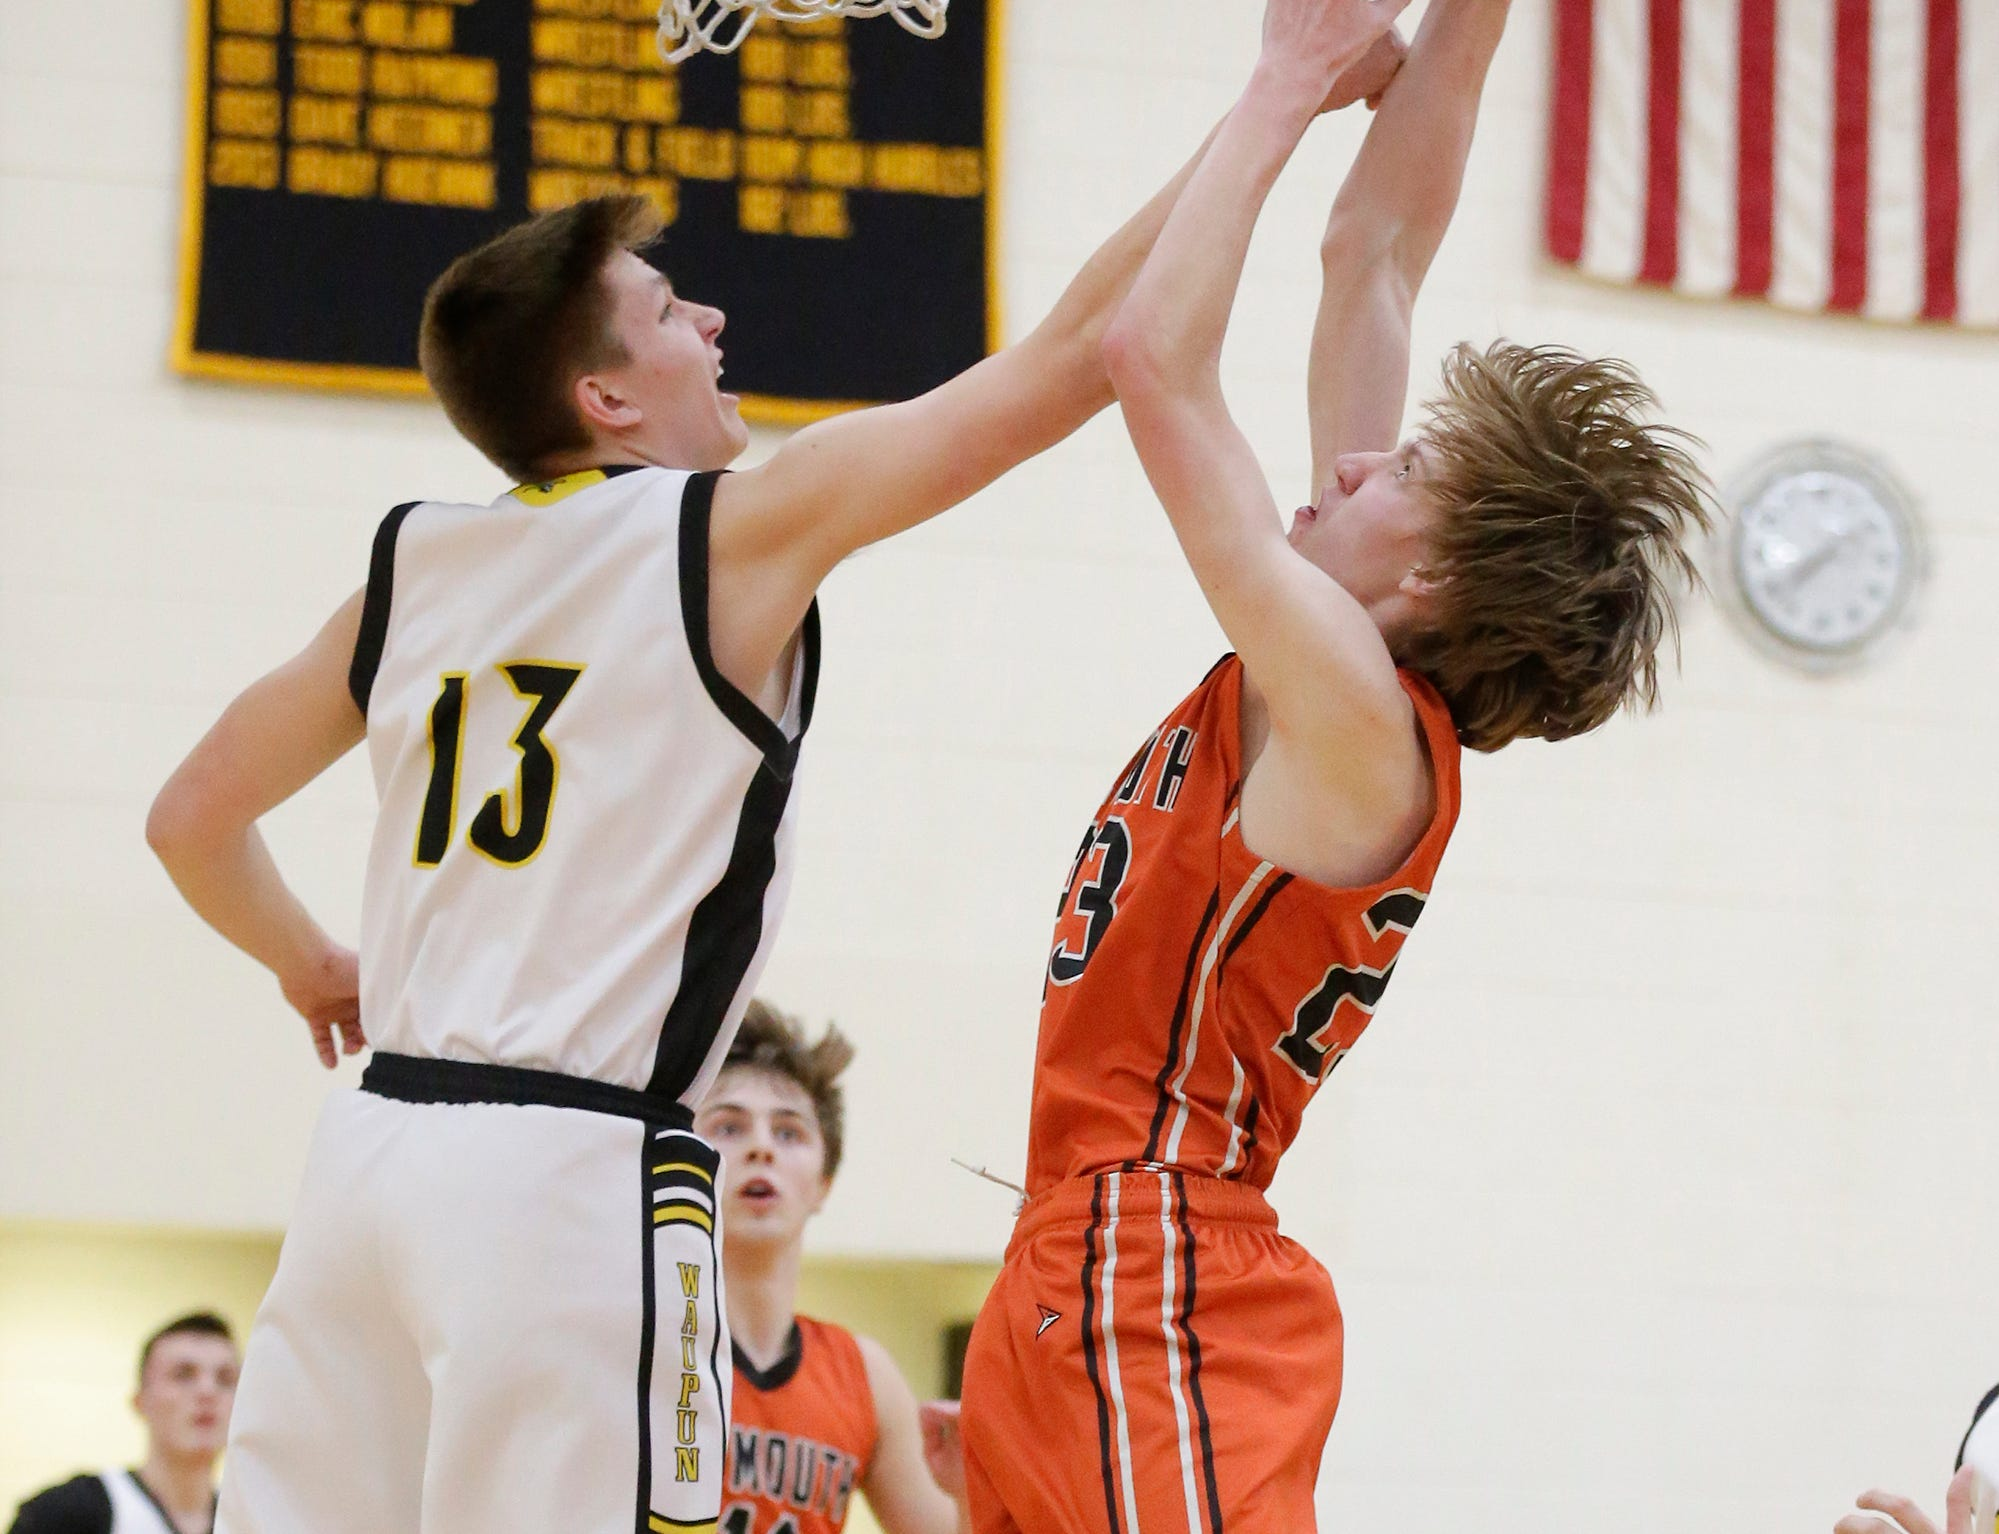 Waupun High School boys basketball's Conner Kamphuis (13) and Plymouth High School's Zach Zeeveld (23) battle for a rebound during their game Friday, February 15, 2019 in Waupun. Doug Raflik/USA TODAY NETWORK-Wisconsin